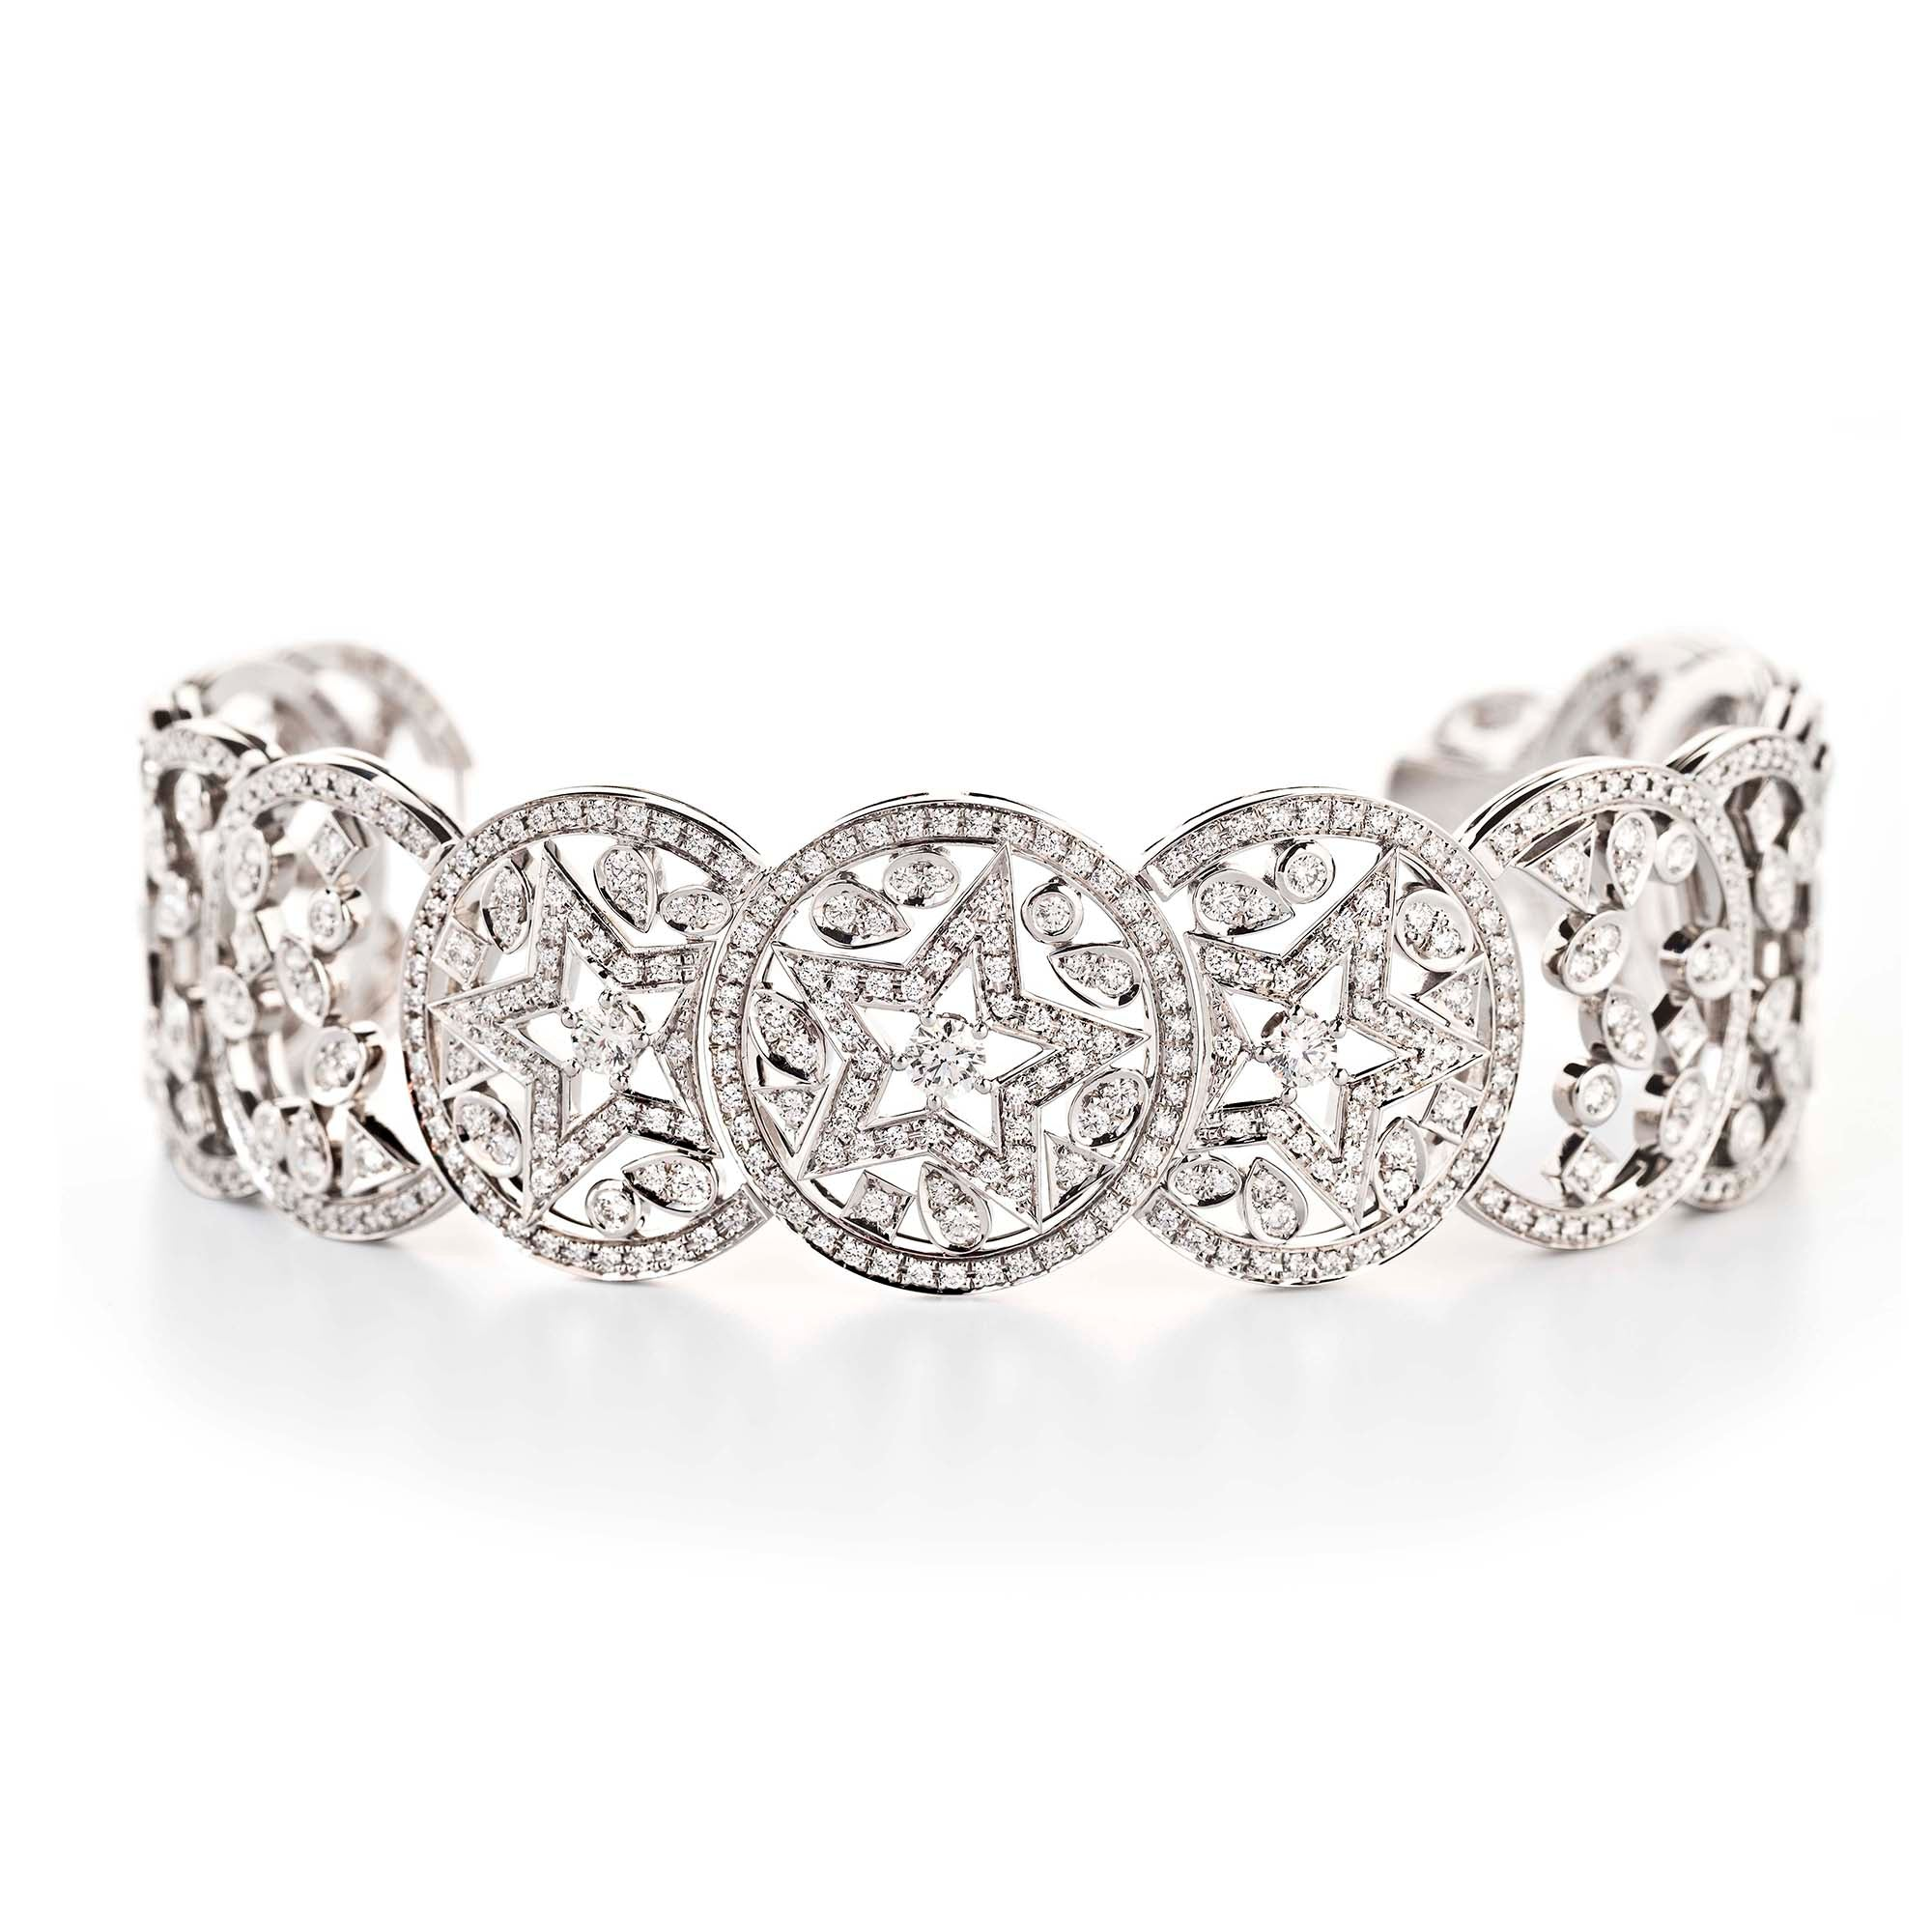 Chanel High Jewelry 18k White Gold and Diamond Bracelet, Les Intemporels Collection